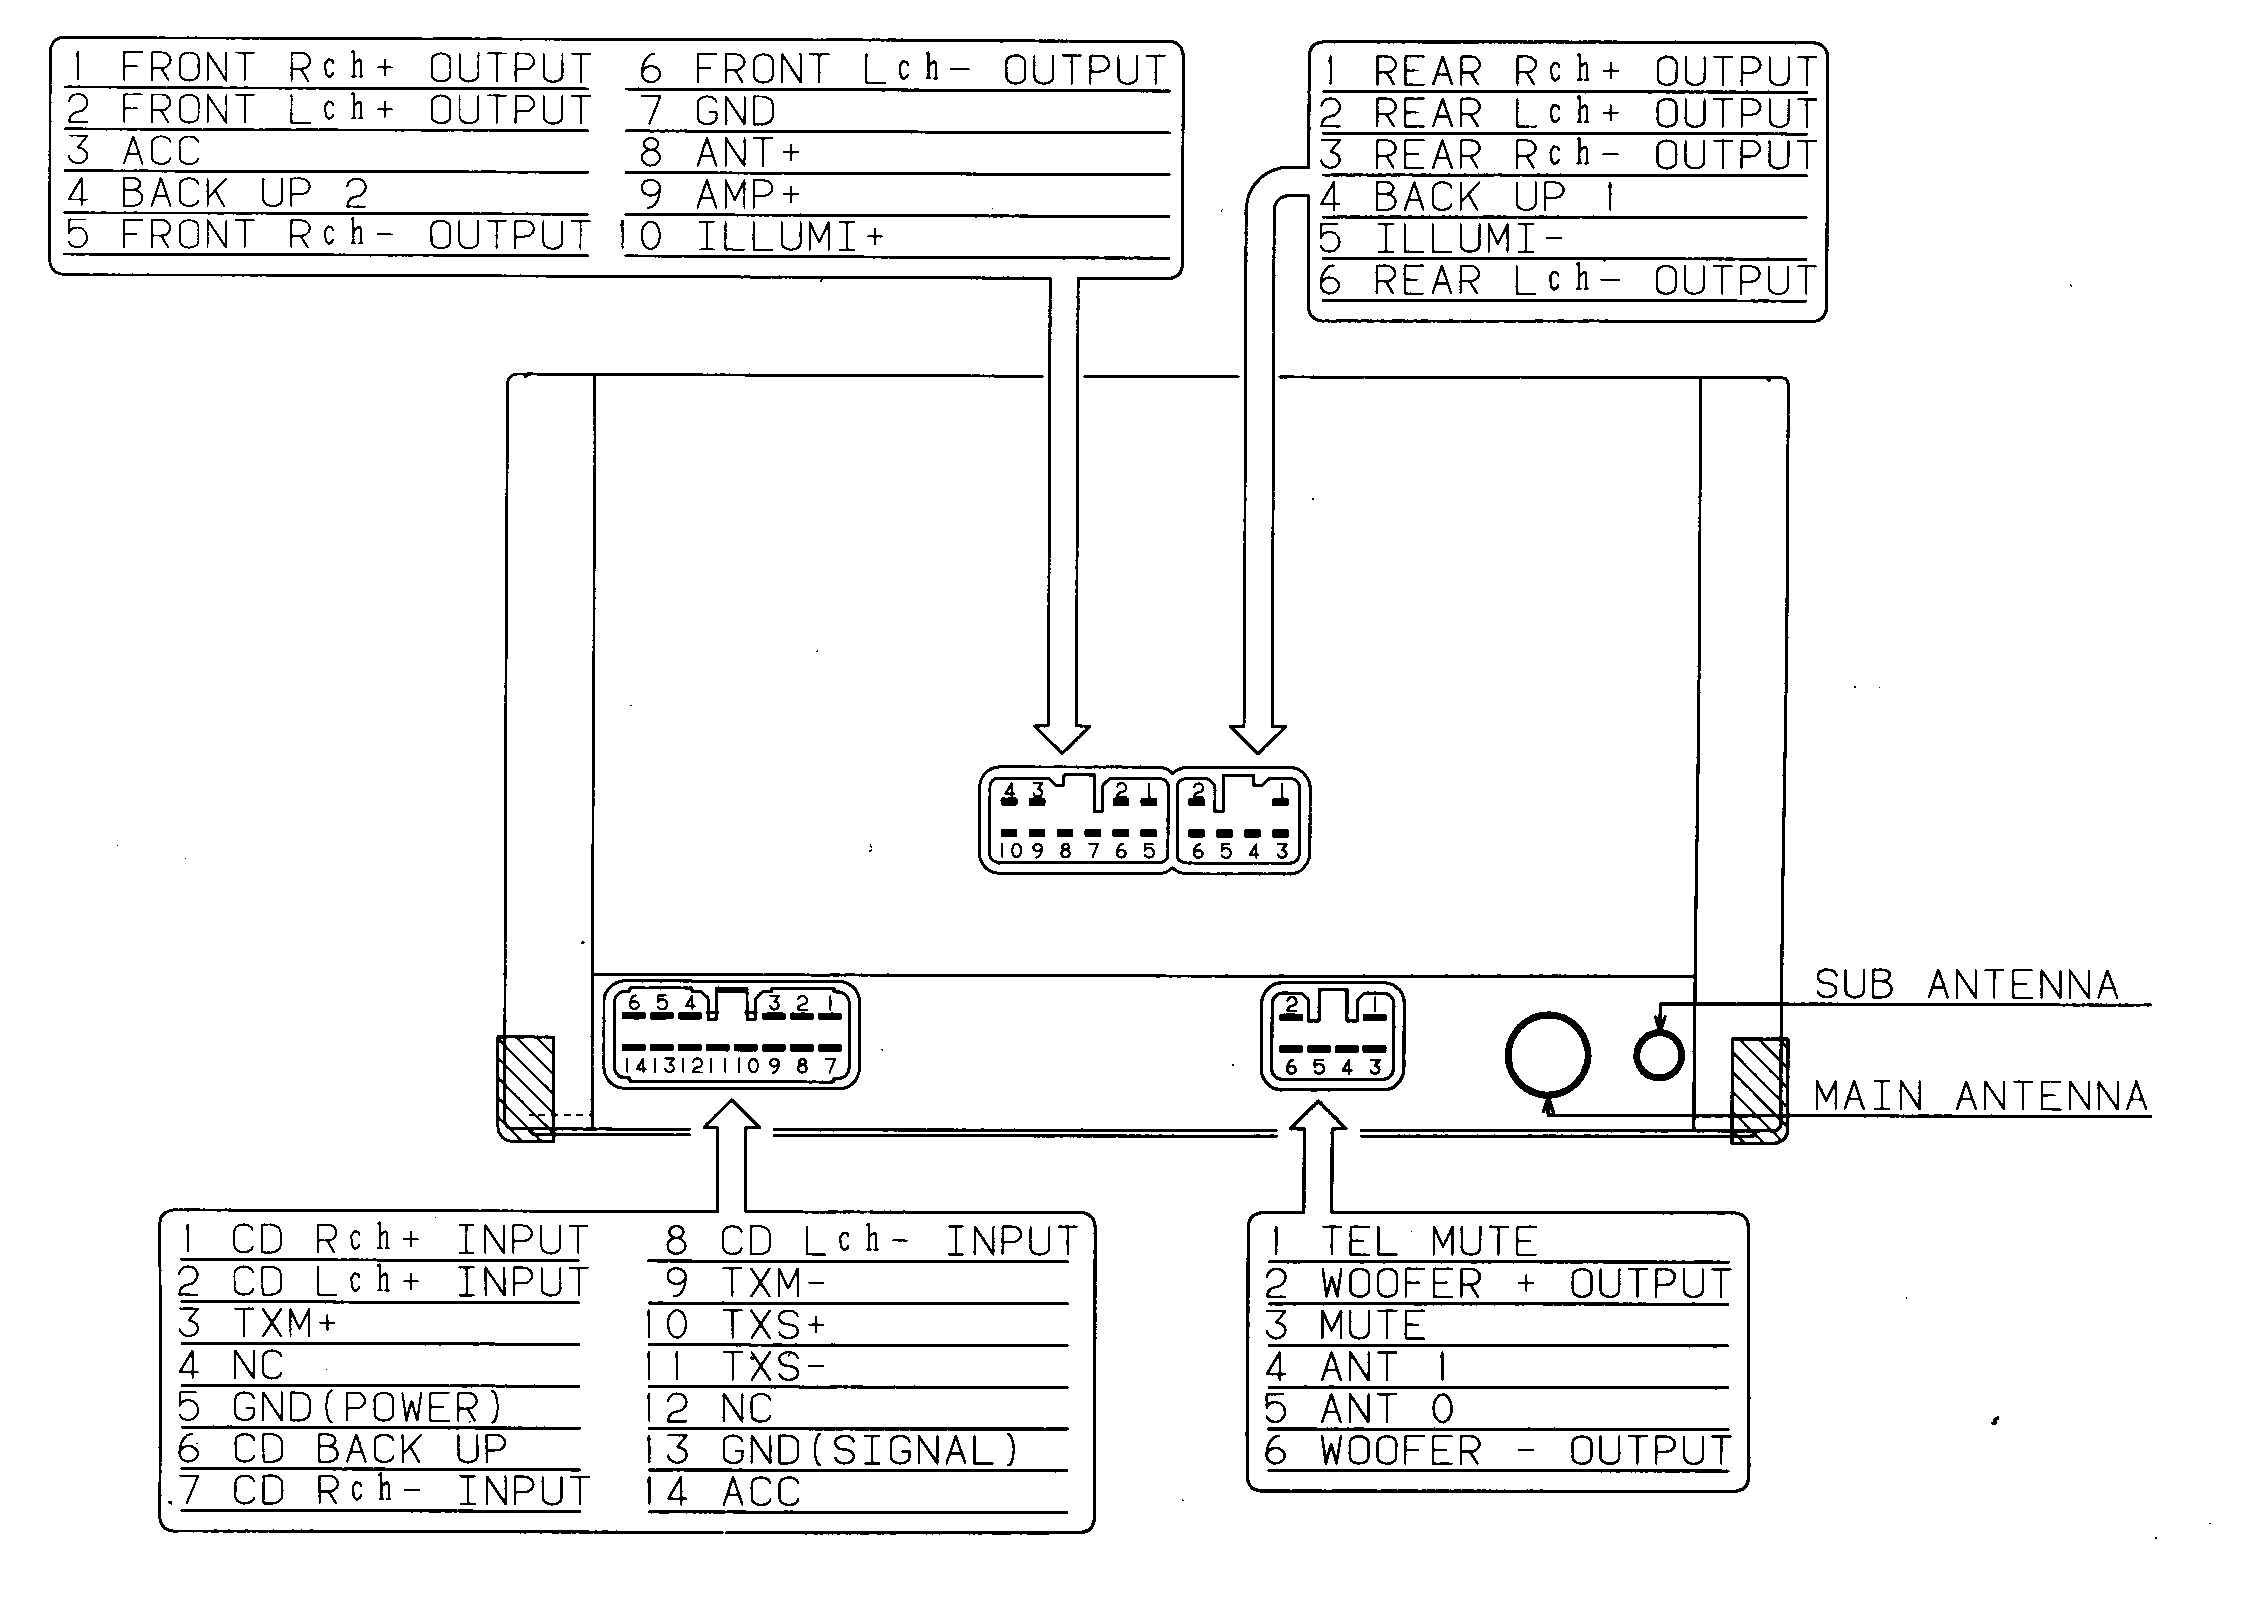 Lexus car stereo wiring diagram harness pinout connector wire lexus rx330 radio wiring diagram lexus rx330 parts diagram  at webbmarketing.co